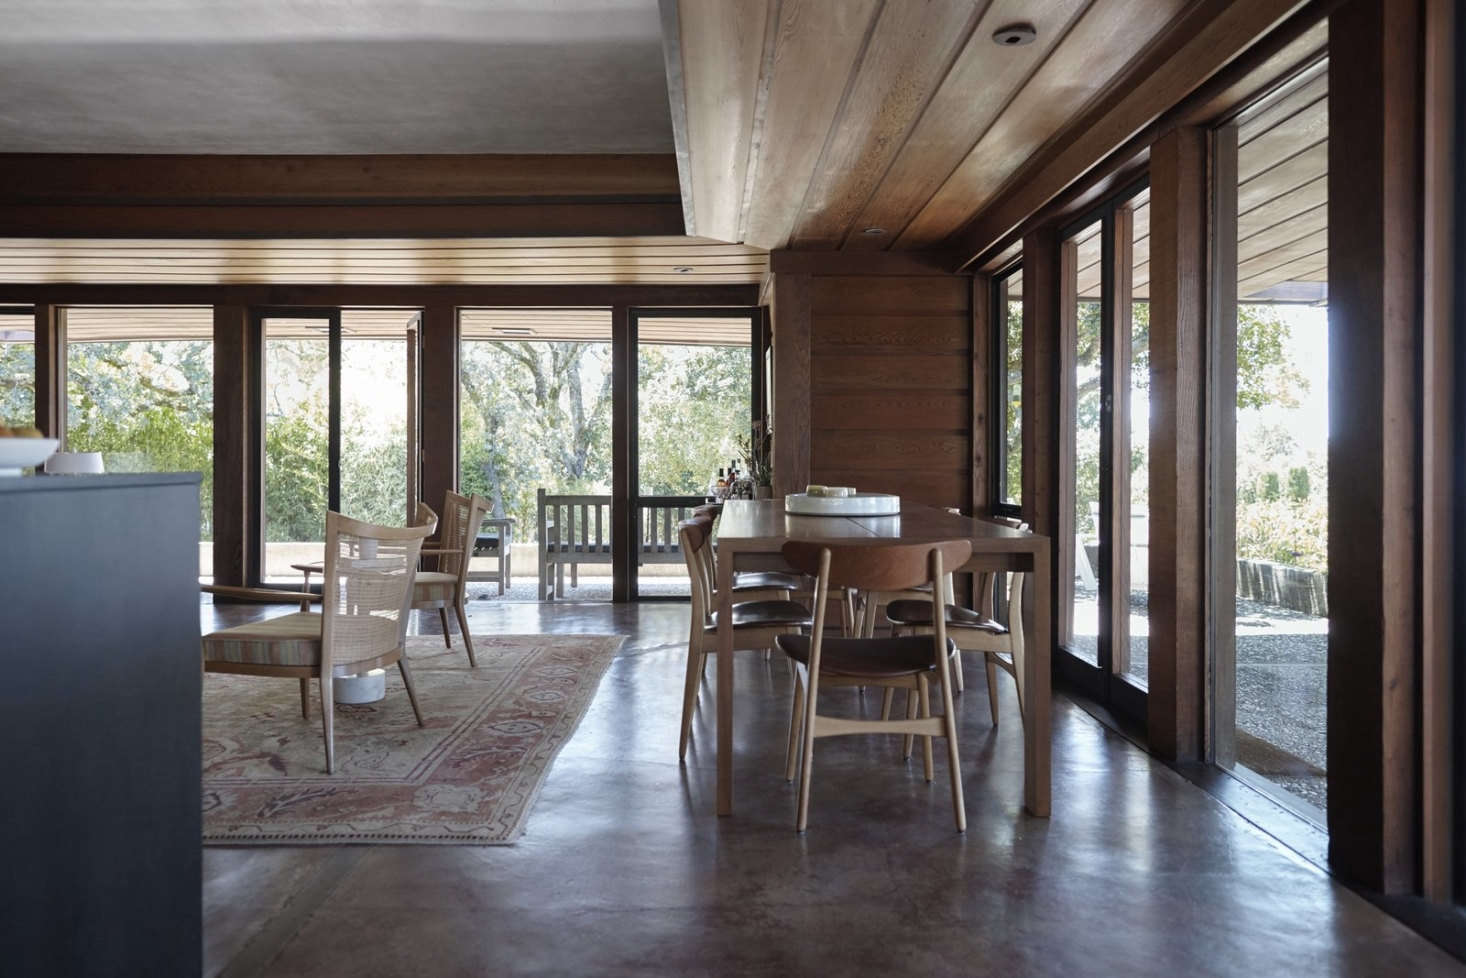 A Henrybuilt walnut dining table is surrounded by iconic original Hans Wegner CH30 chairs. The living room carpet has traveled with Mark and Janet from Seattle to London to San Francisco and now, to Napa.